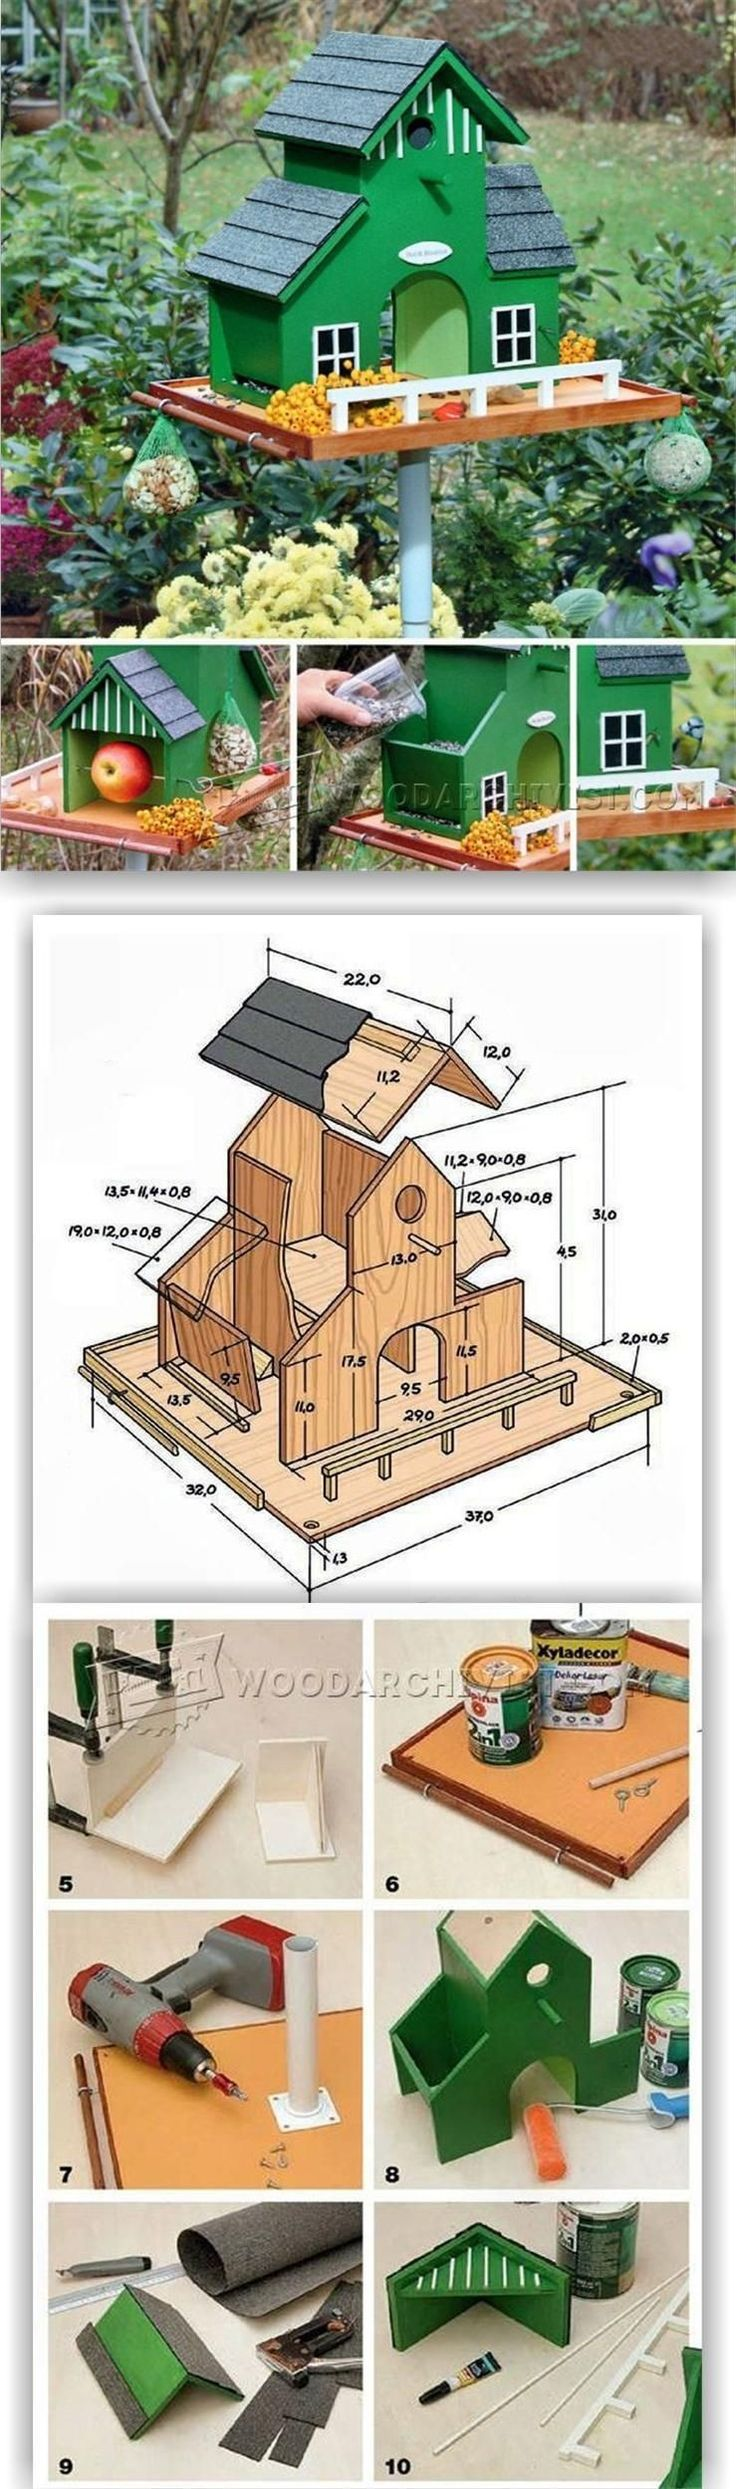 Bird house feeder #birdhousetips